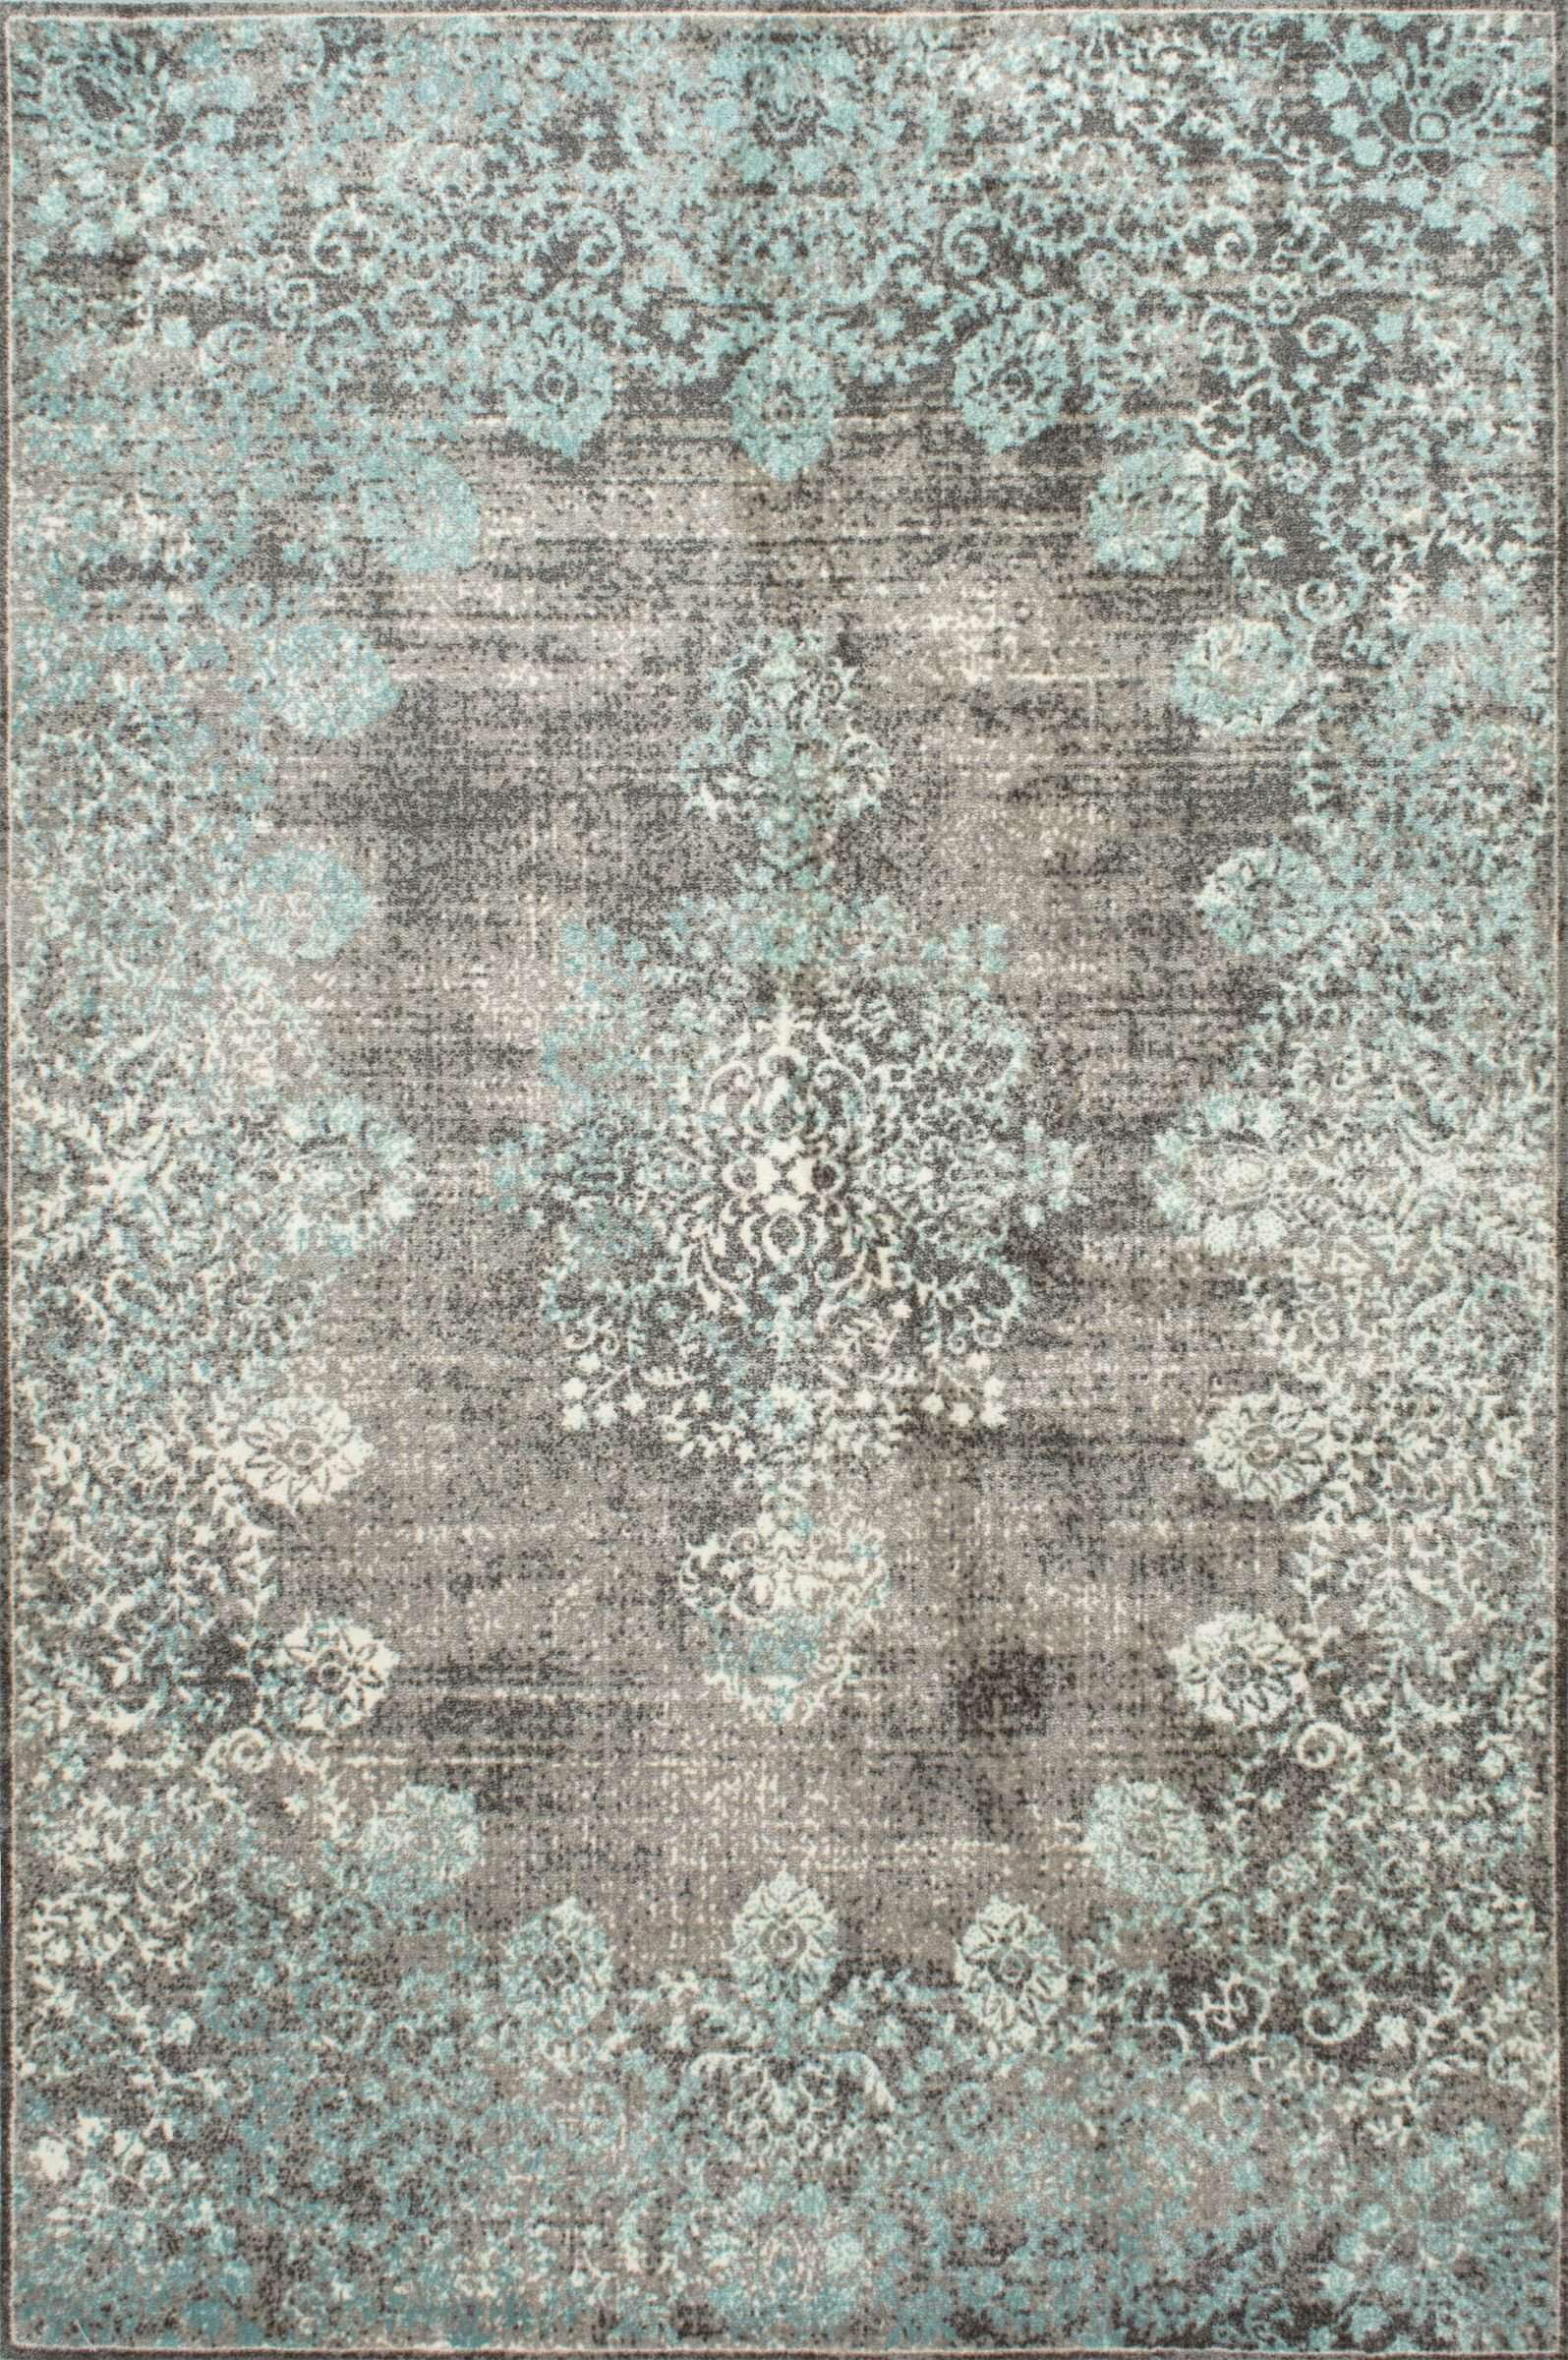 rug reviews wayfair utterback row mercury pdp rugs ca area blue